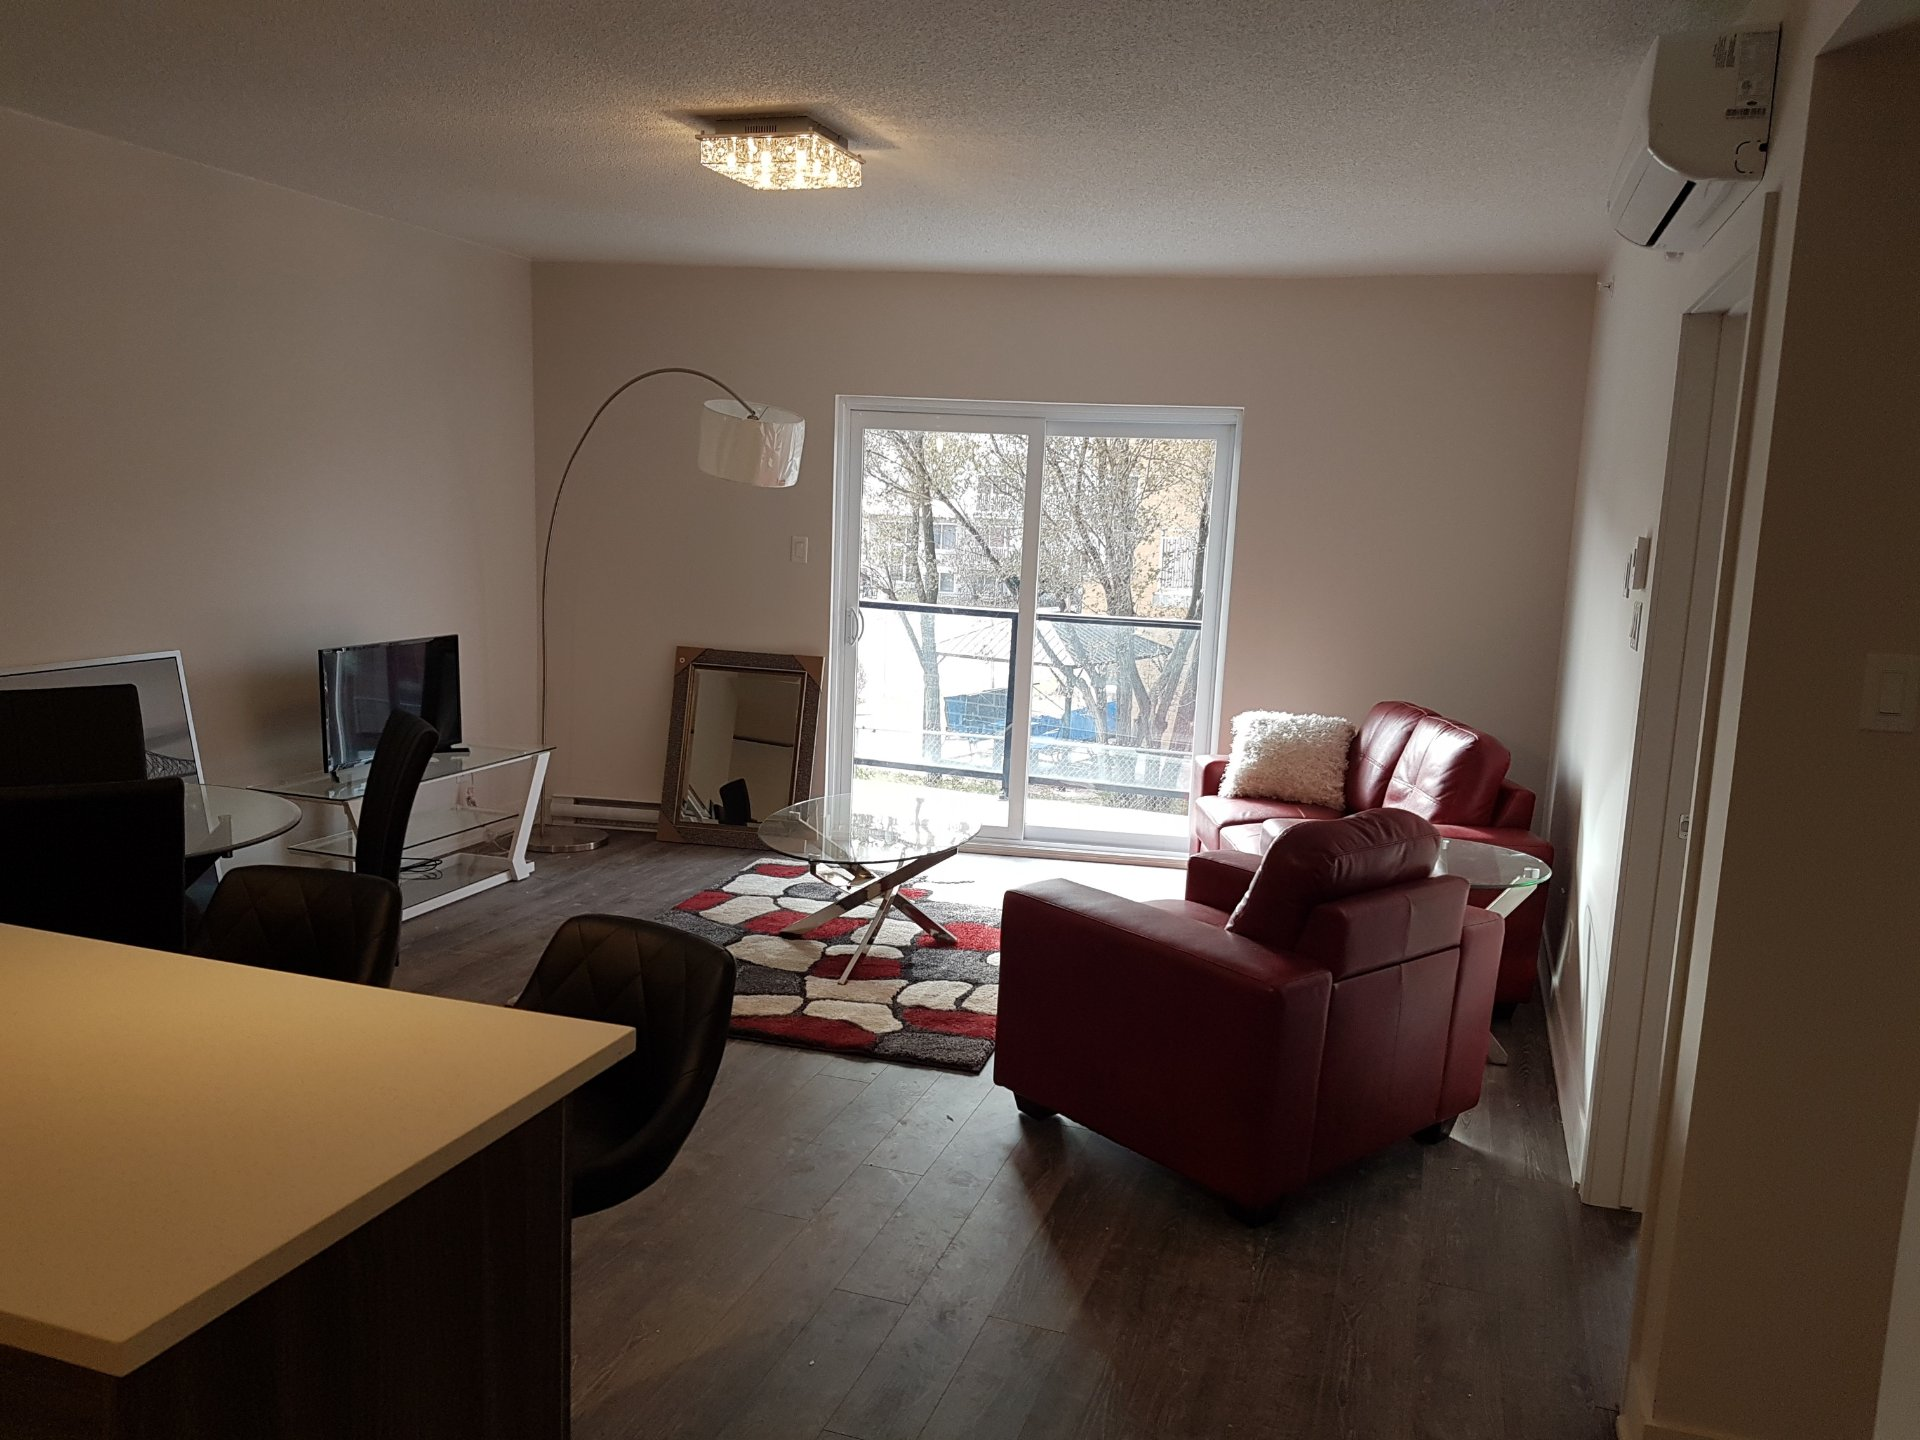 Condo for sale chomedey laval buy condo chomedey laval solutioingenieria Images